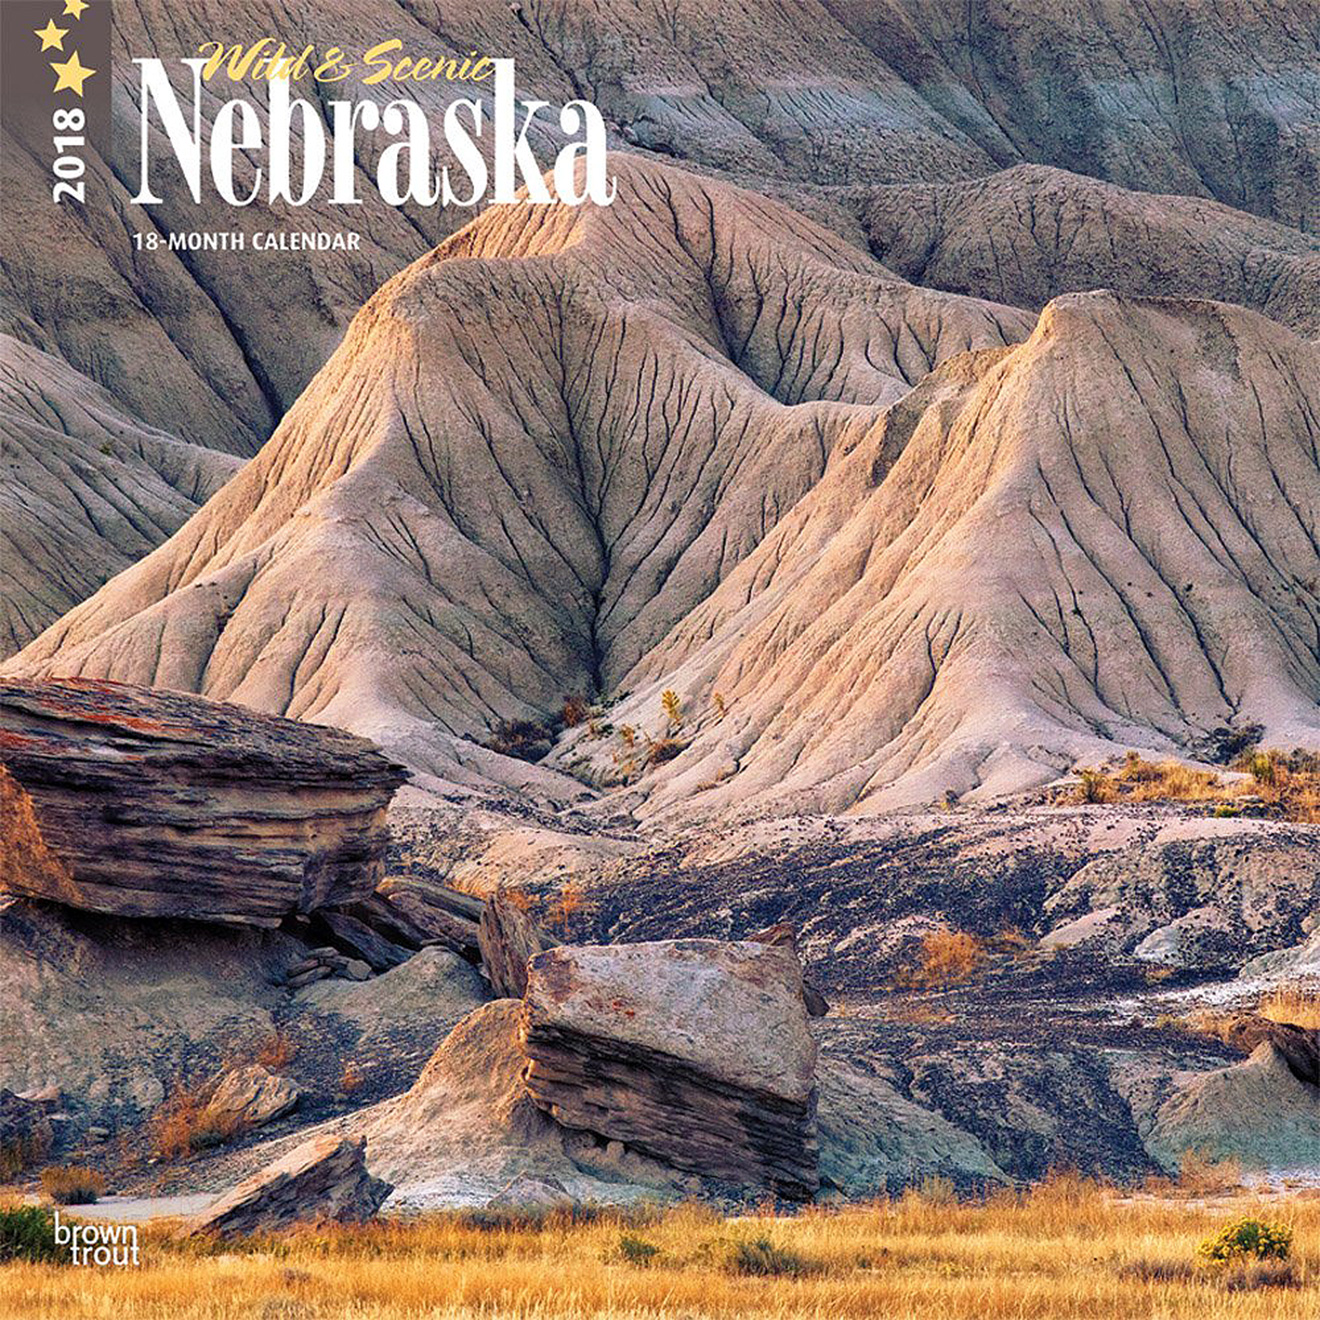 2018 Nebraska Calendar by Brown Trout.  Sold in Amazon, Retail Stores, and Calendar Club.  Contributed 6 Photographs Including Cover. - Tear Sheet Photograph